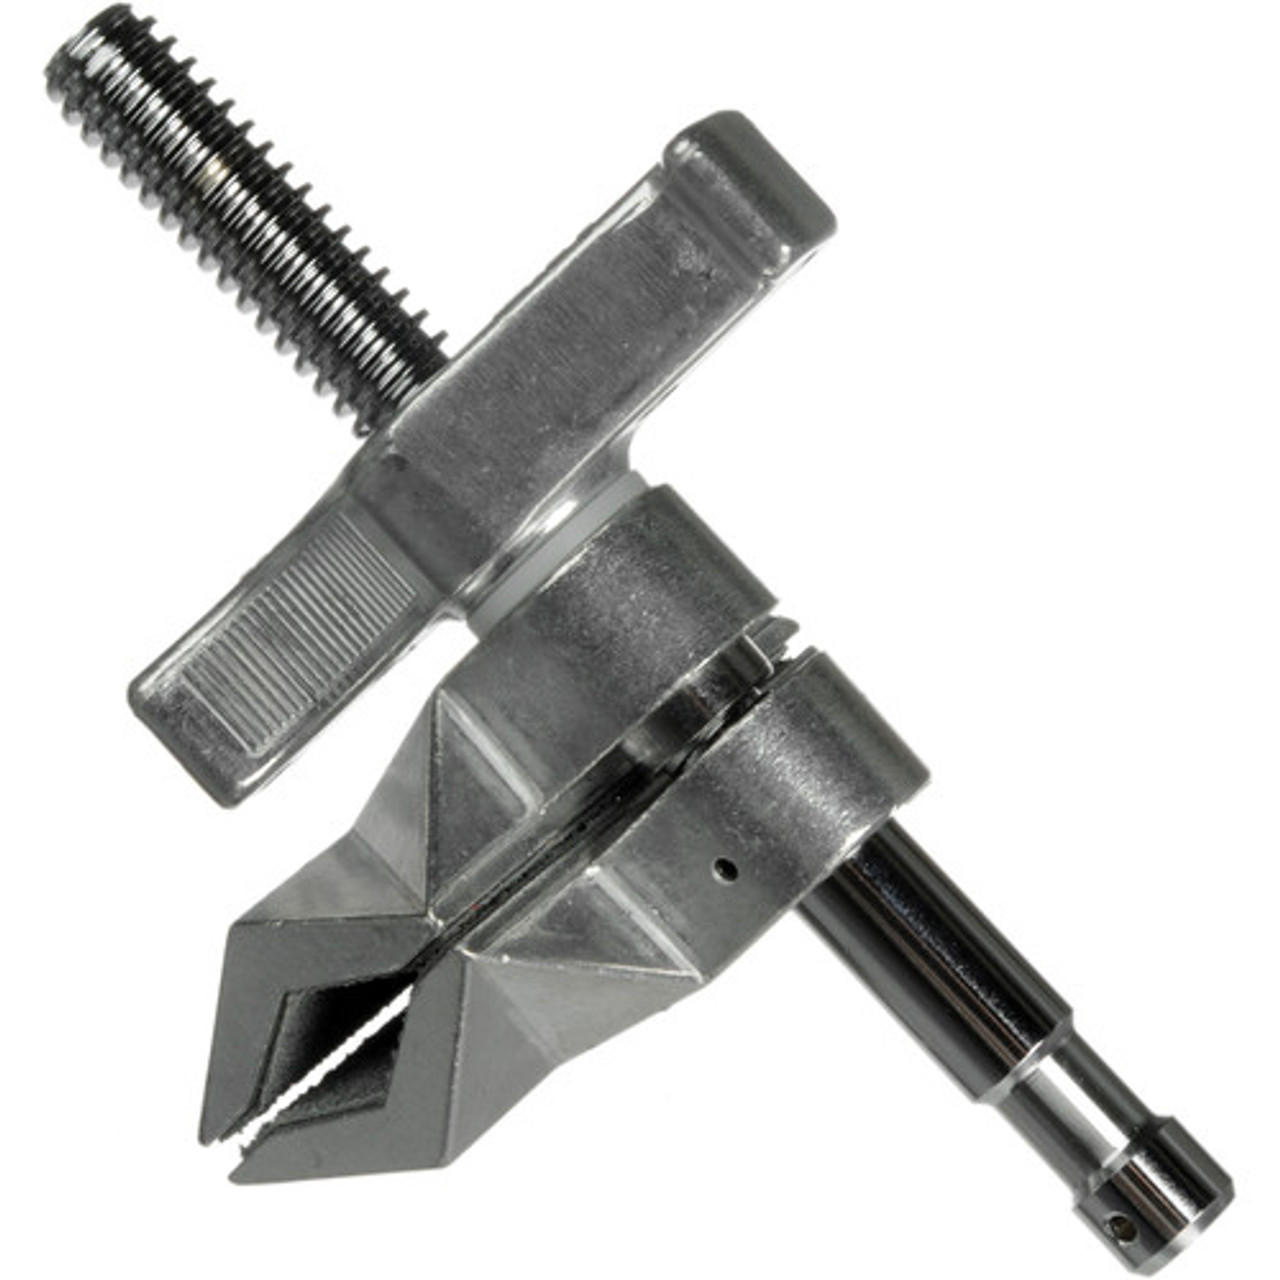 "Matthews Matthellini Clamp 2"" Center Jaw"